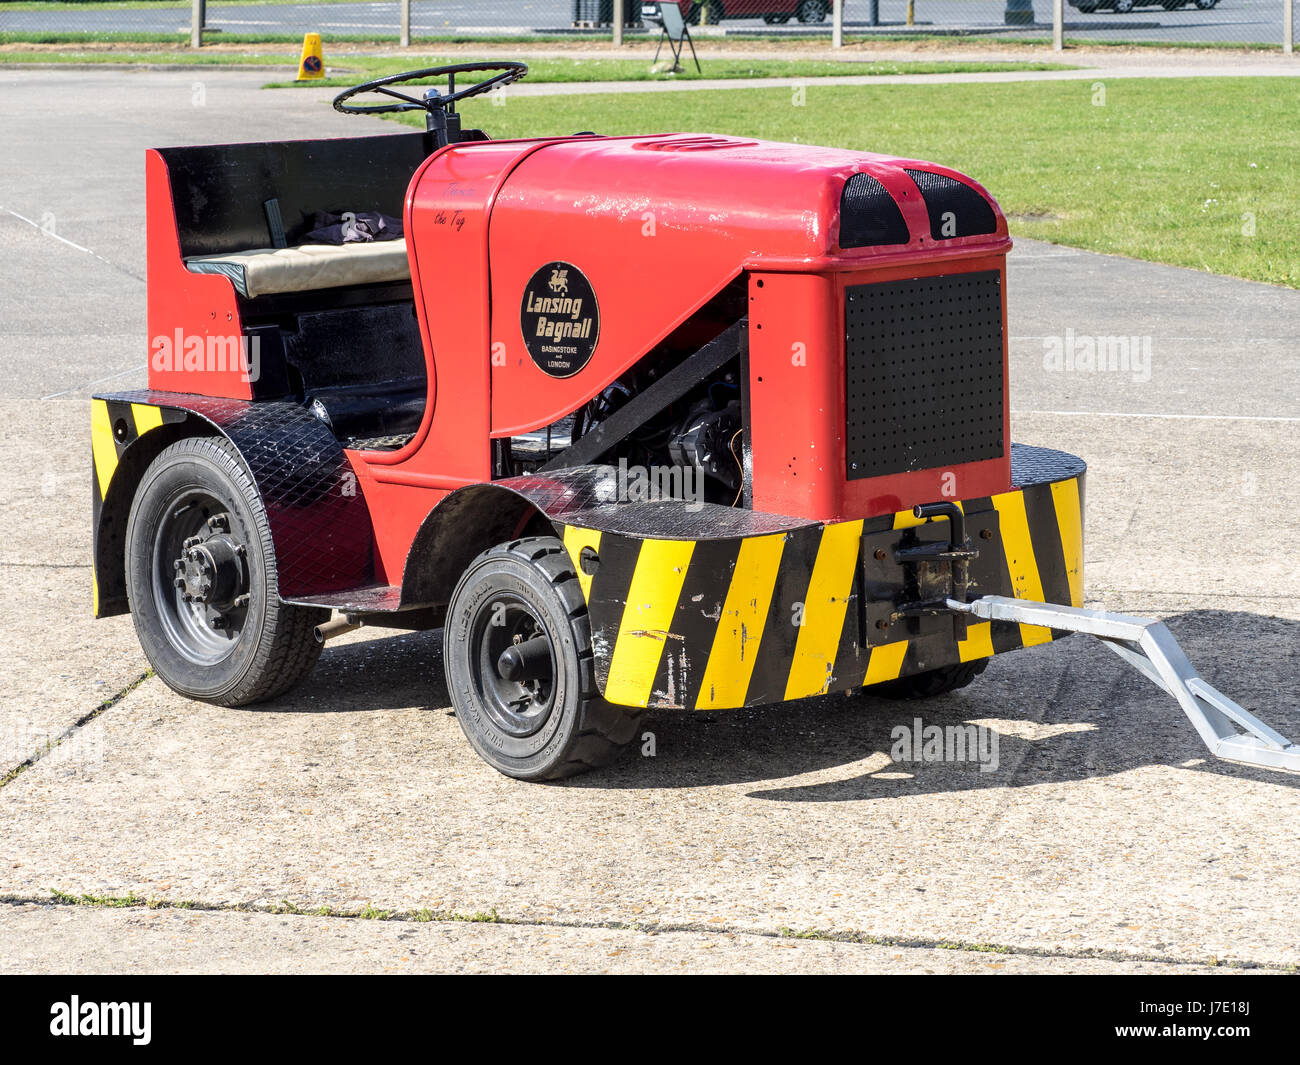 A vintage Lansing Bagnall tug at the Imperial War Museum Duxford in Cambridgeshire, UK - Stock Image